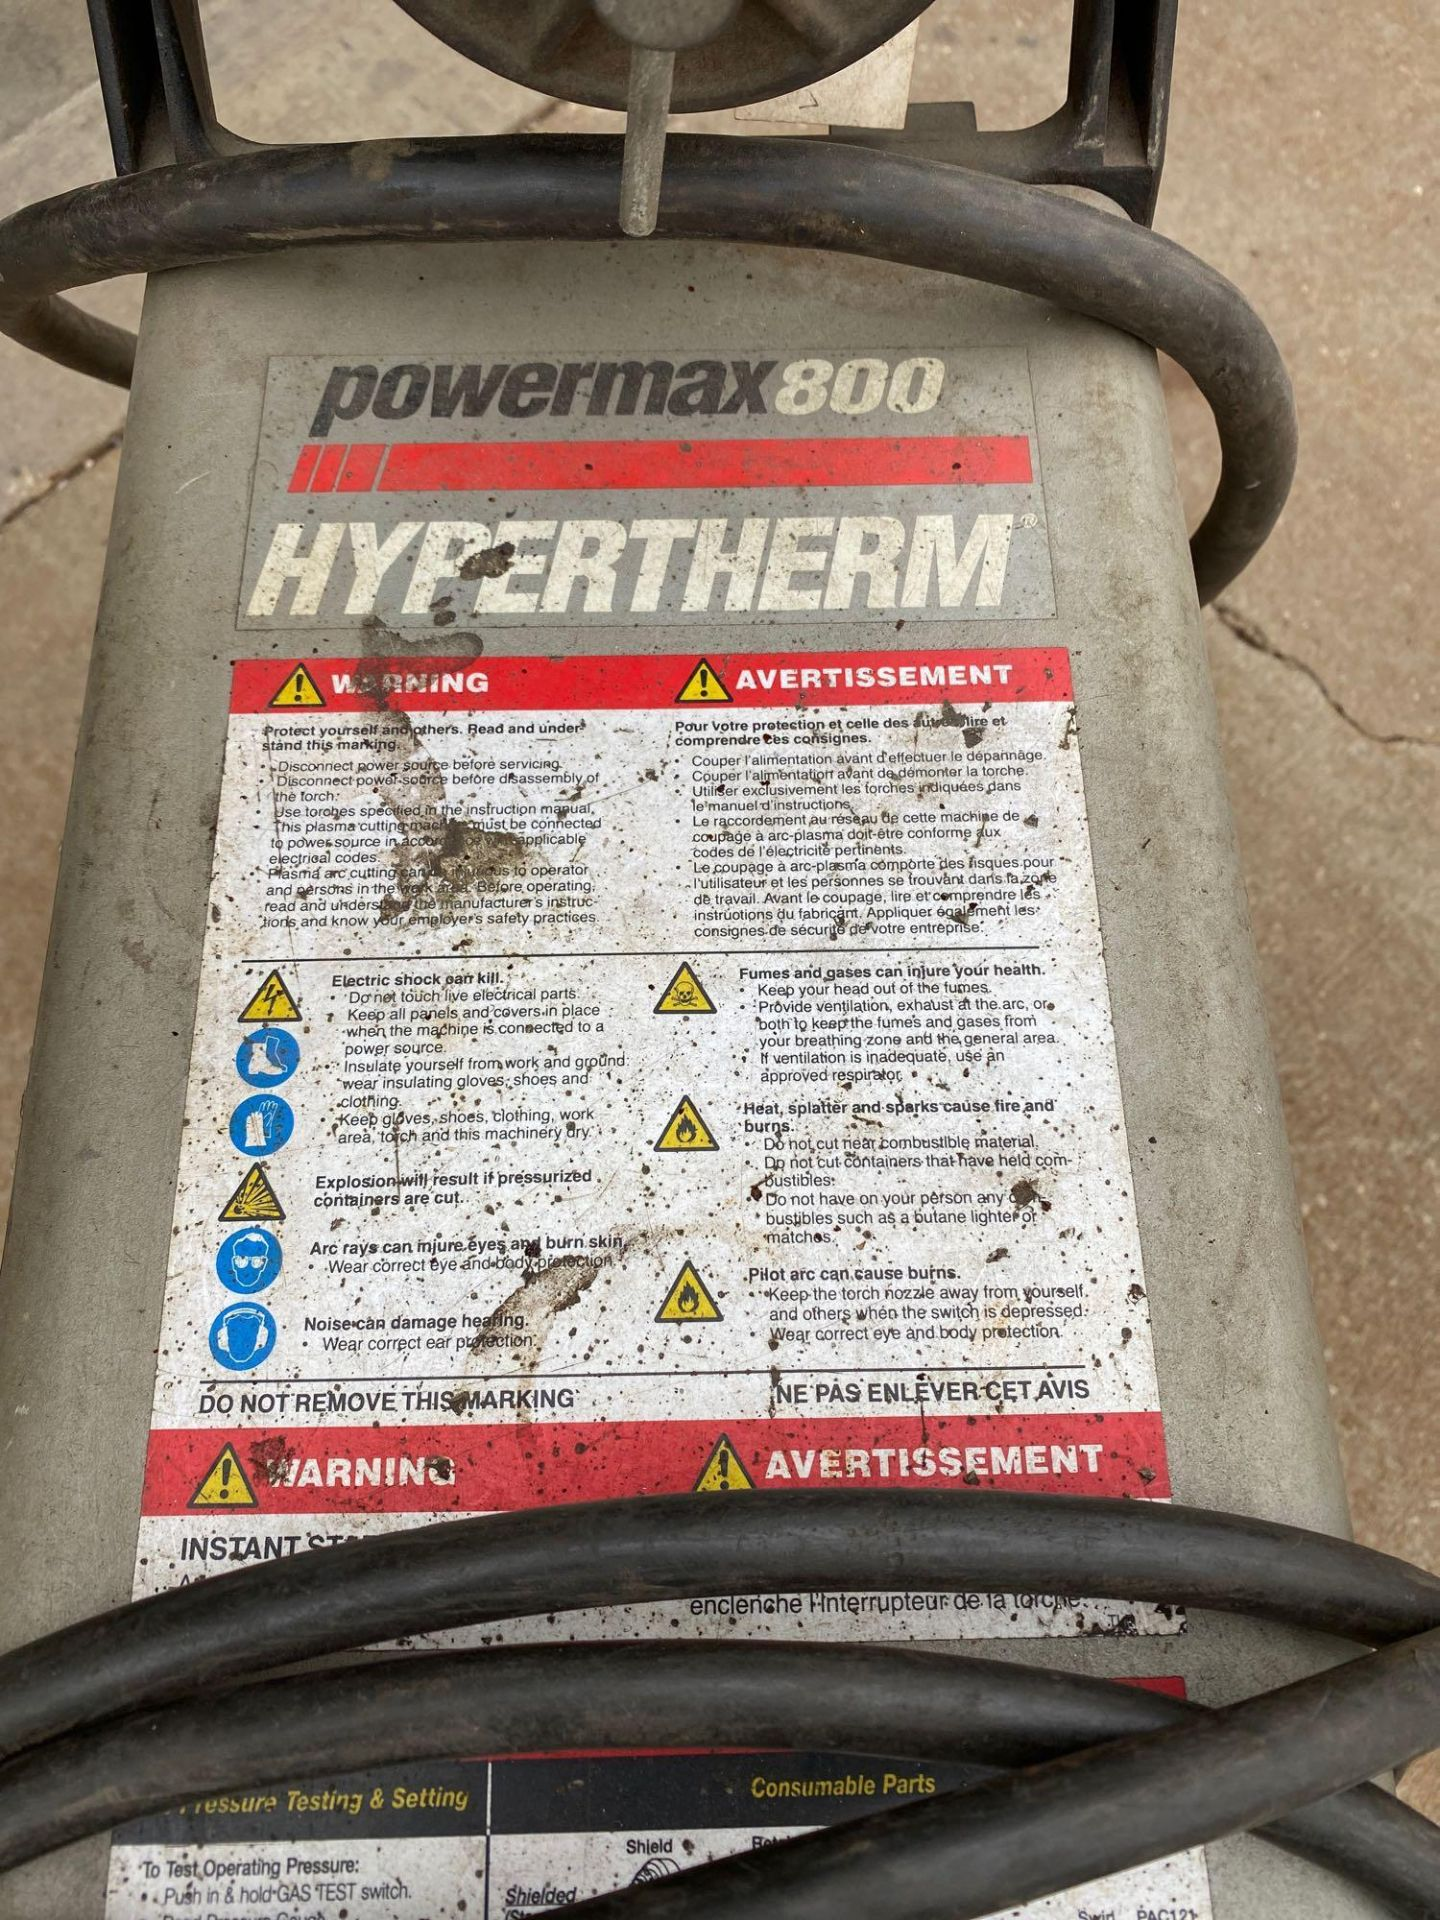 Power Max 800 Hypertherm Plasma Cutter - Image 2 of 8